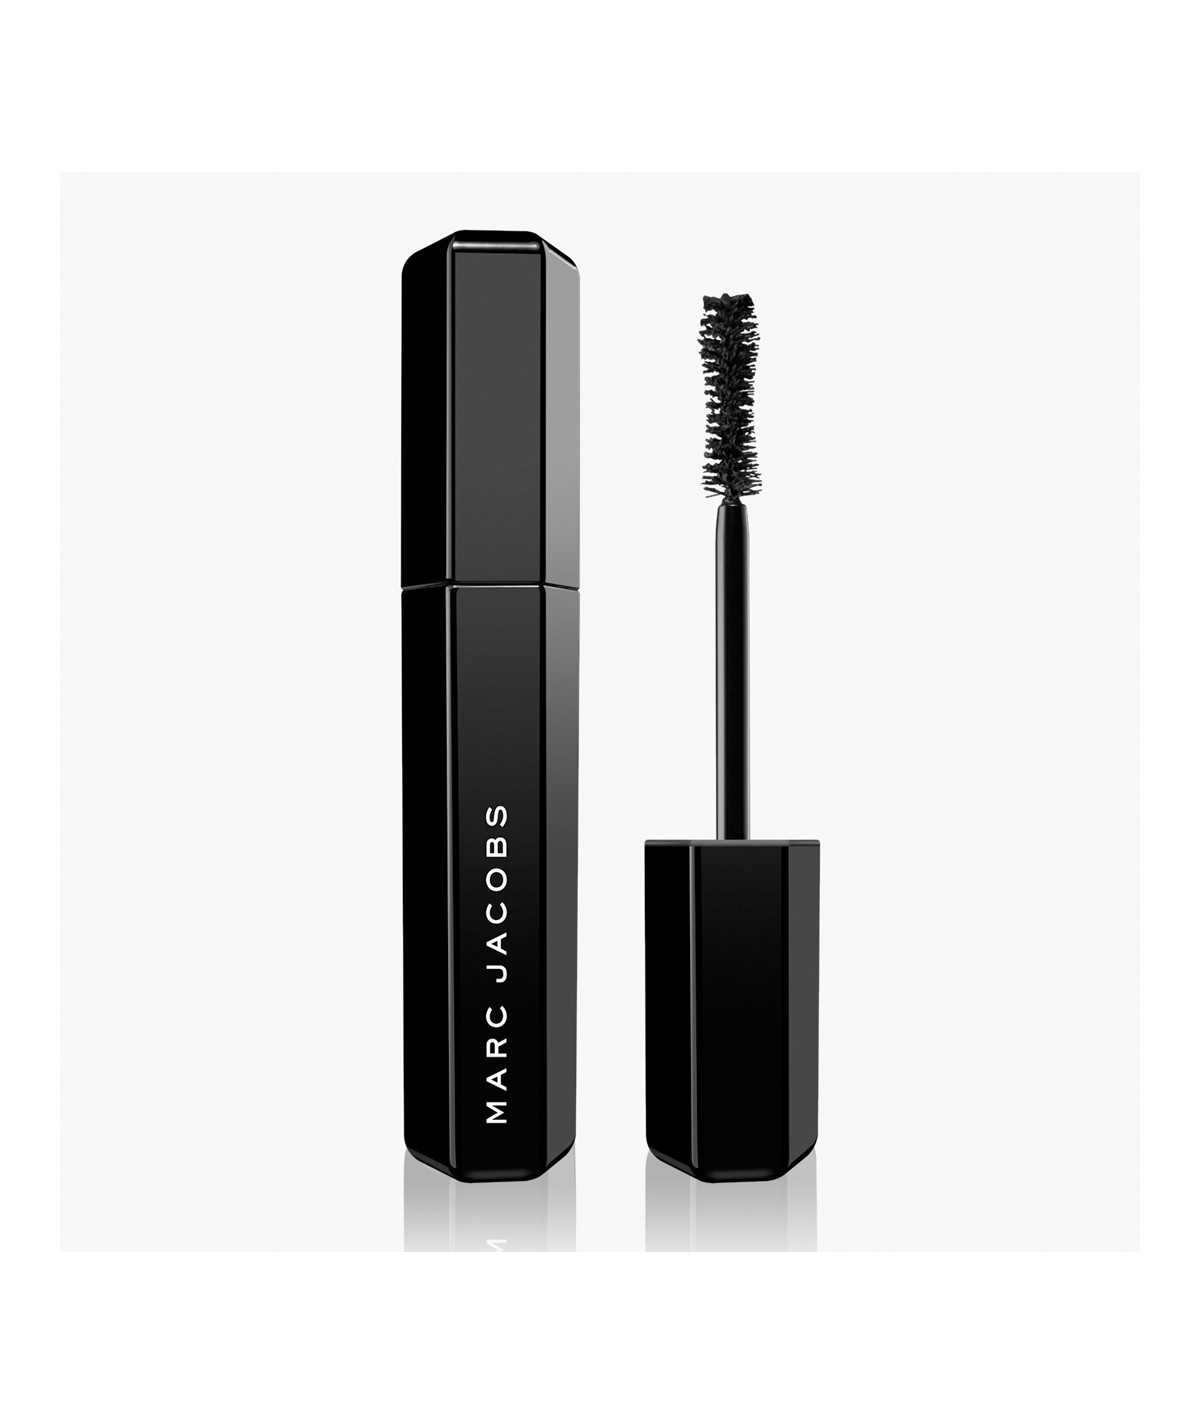 MARC JACOBS BEAUTY Velvet Noir Major Volume Mascara trial size - 0.17 oz